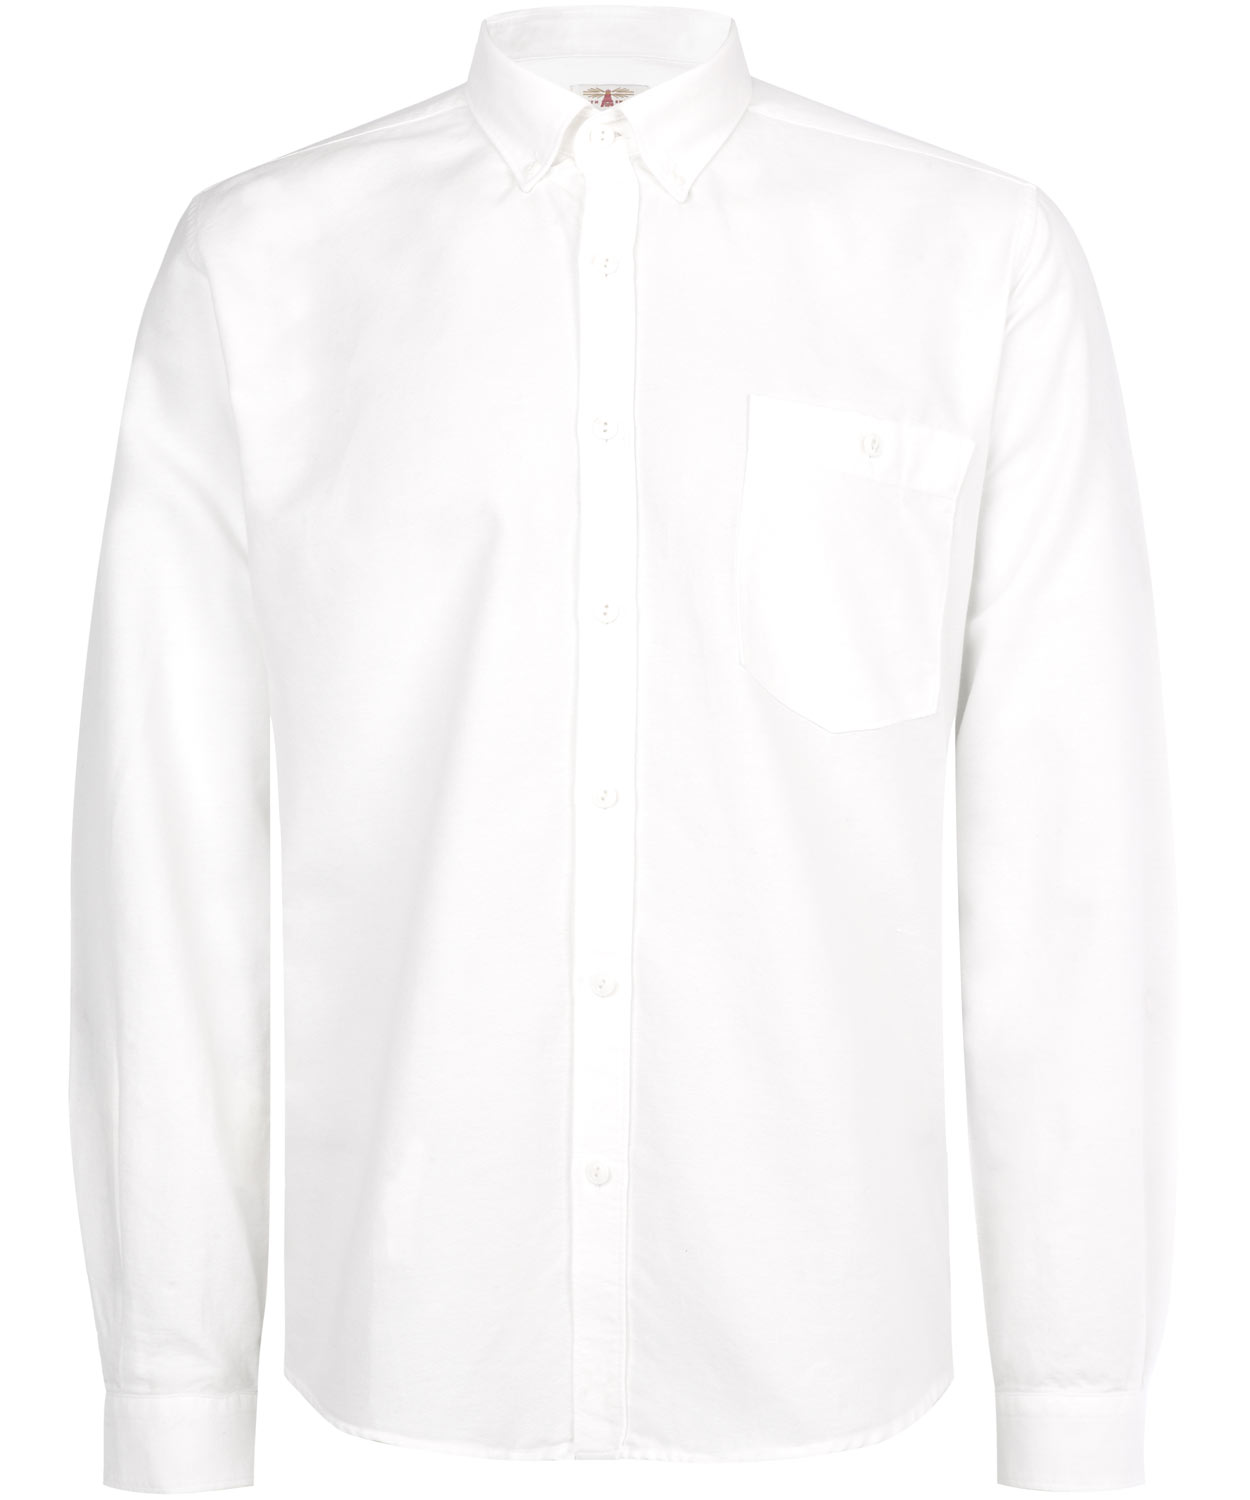 Barbour White Farnedale Oxford Shirt In White For Men Lyst